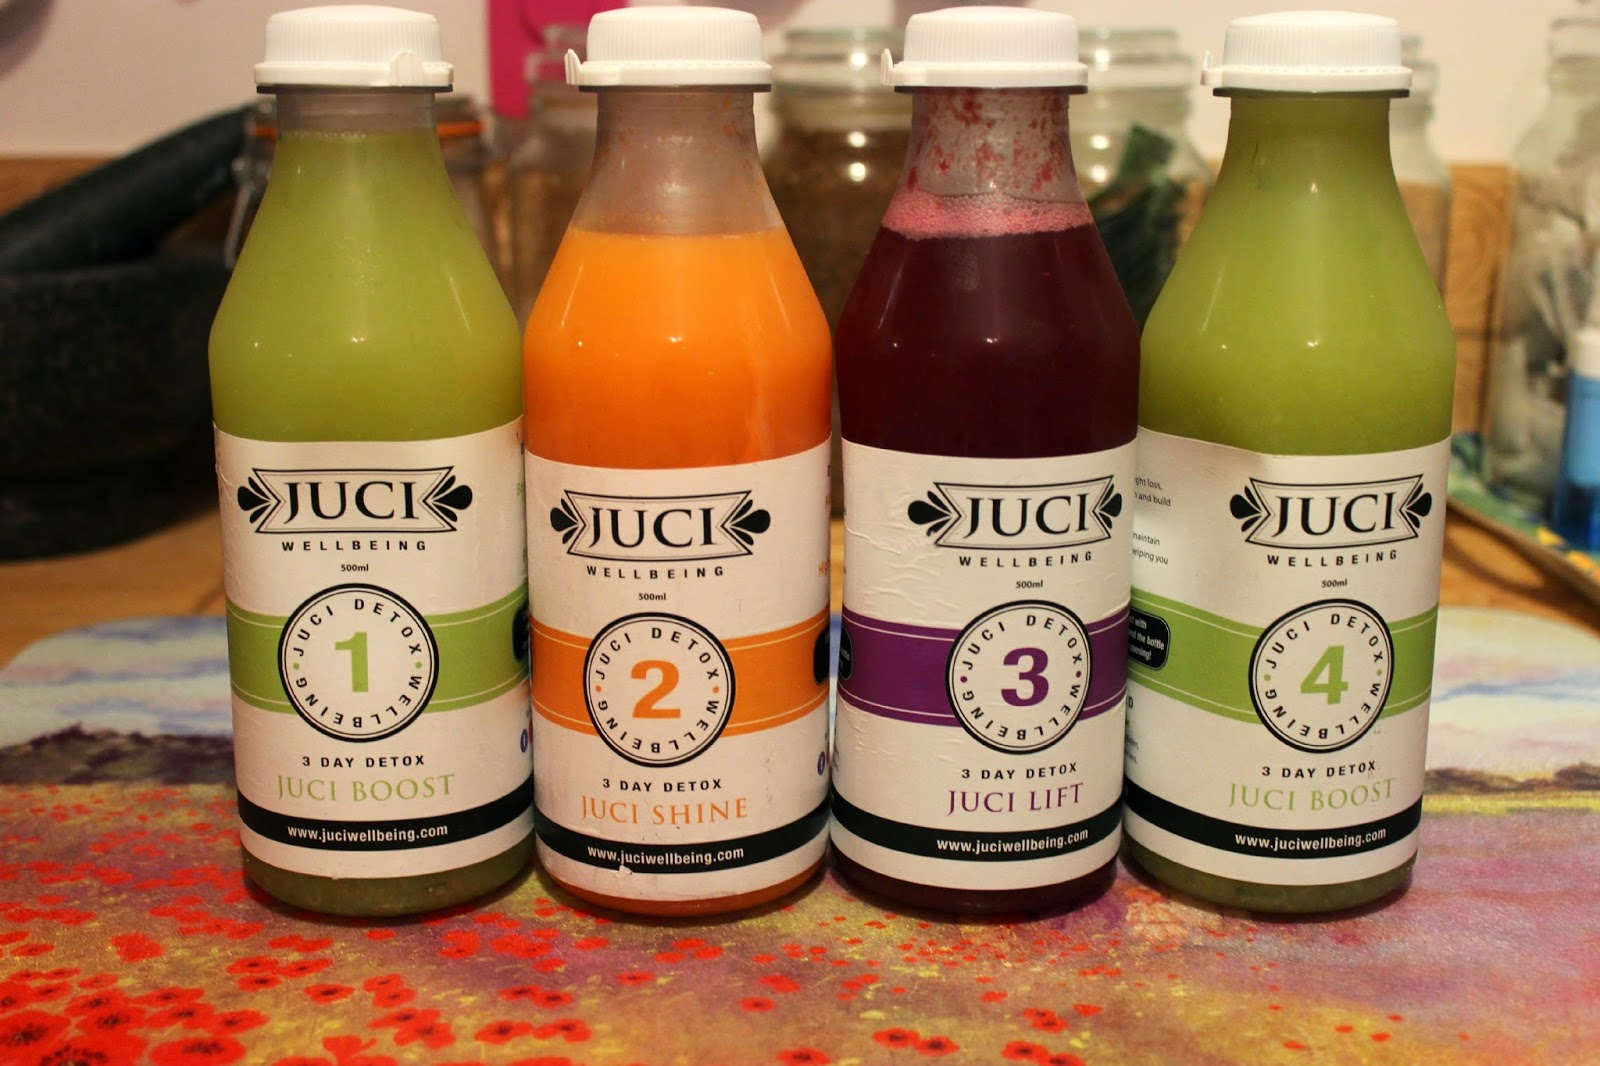 Picture of Juci Wellbeing 3 day detox